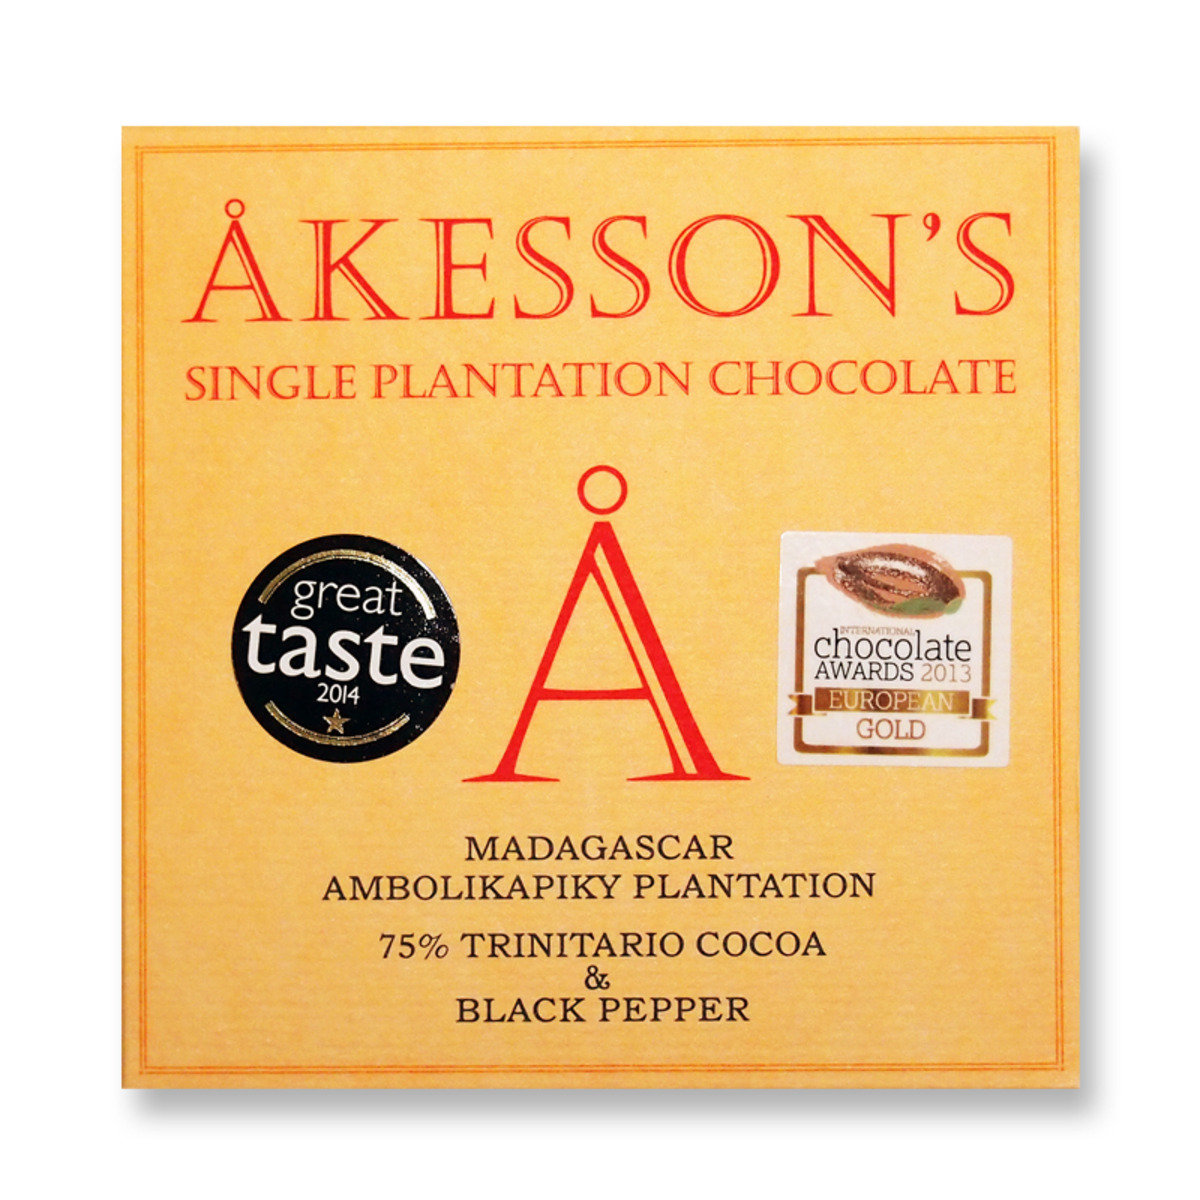 Madagascar - Ambolikapiky Plantation - 75% chocolate & Black Pepper - ORGANIC